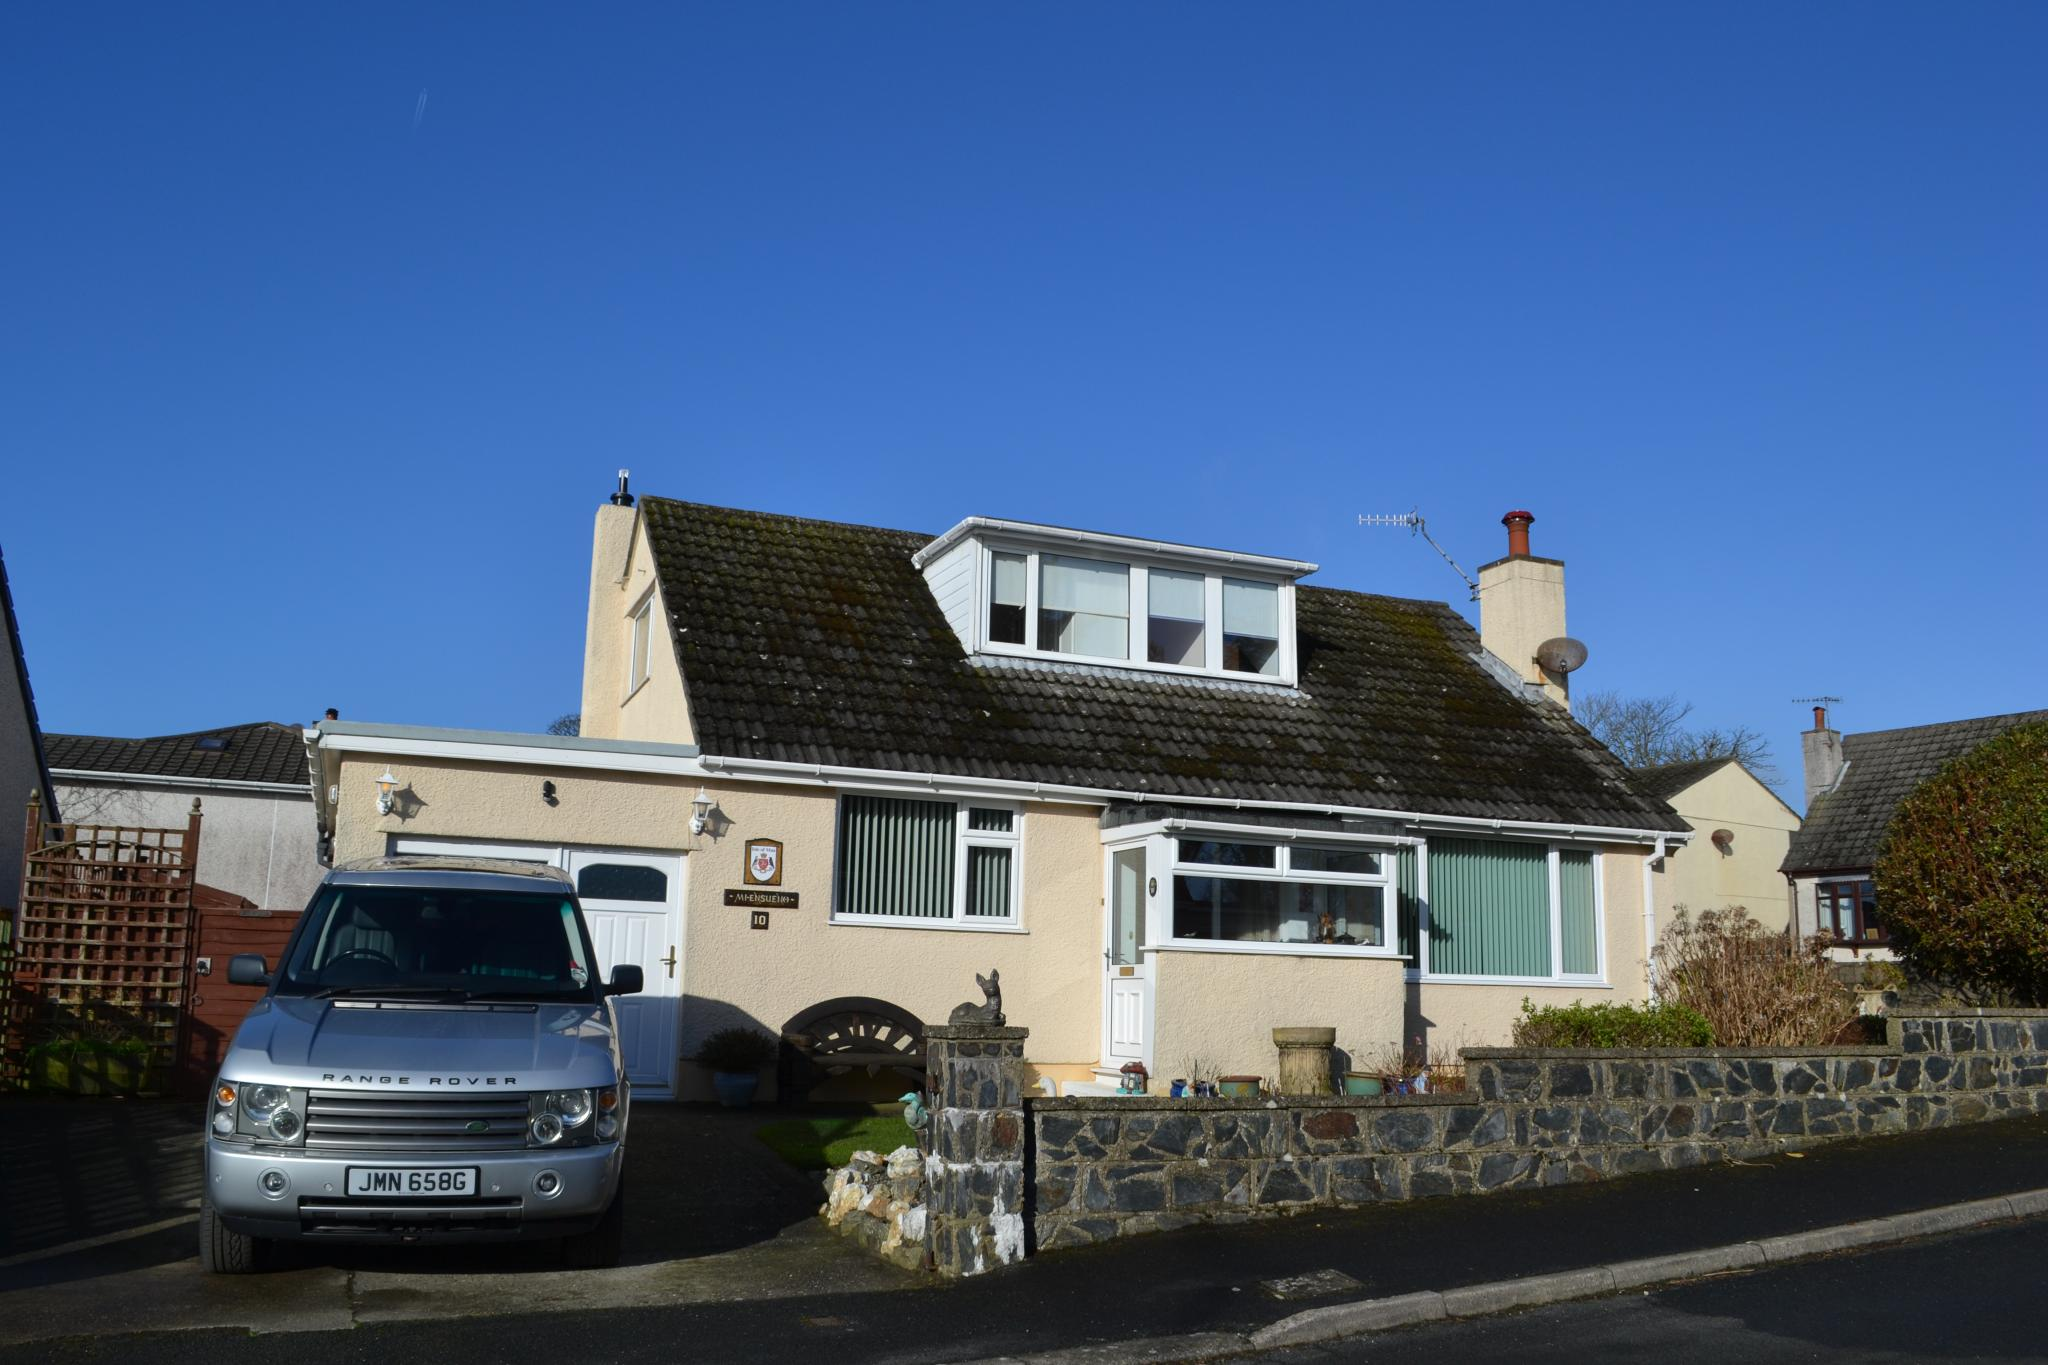 3 bedroom detached bungalow For Sale in Colby - Photograph 3